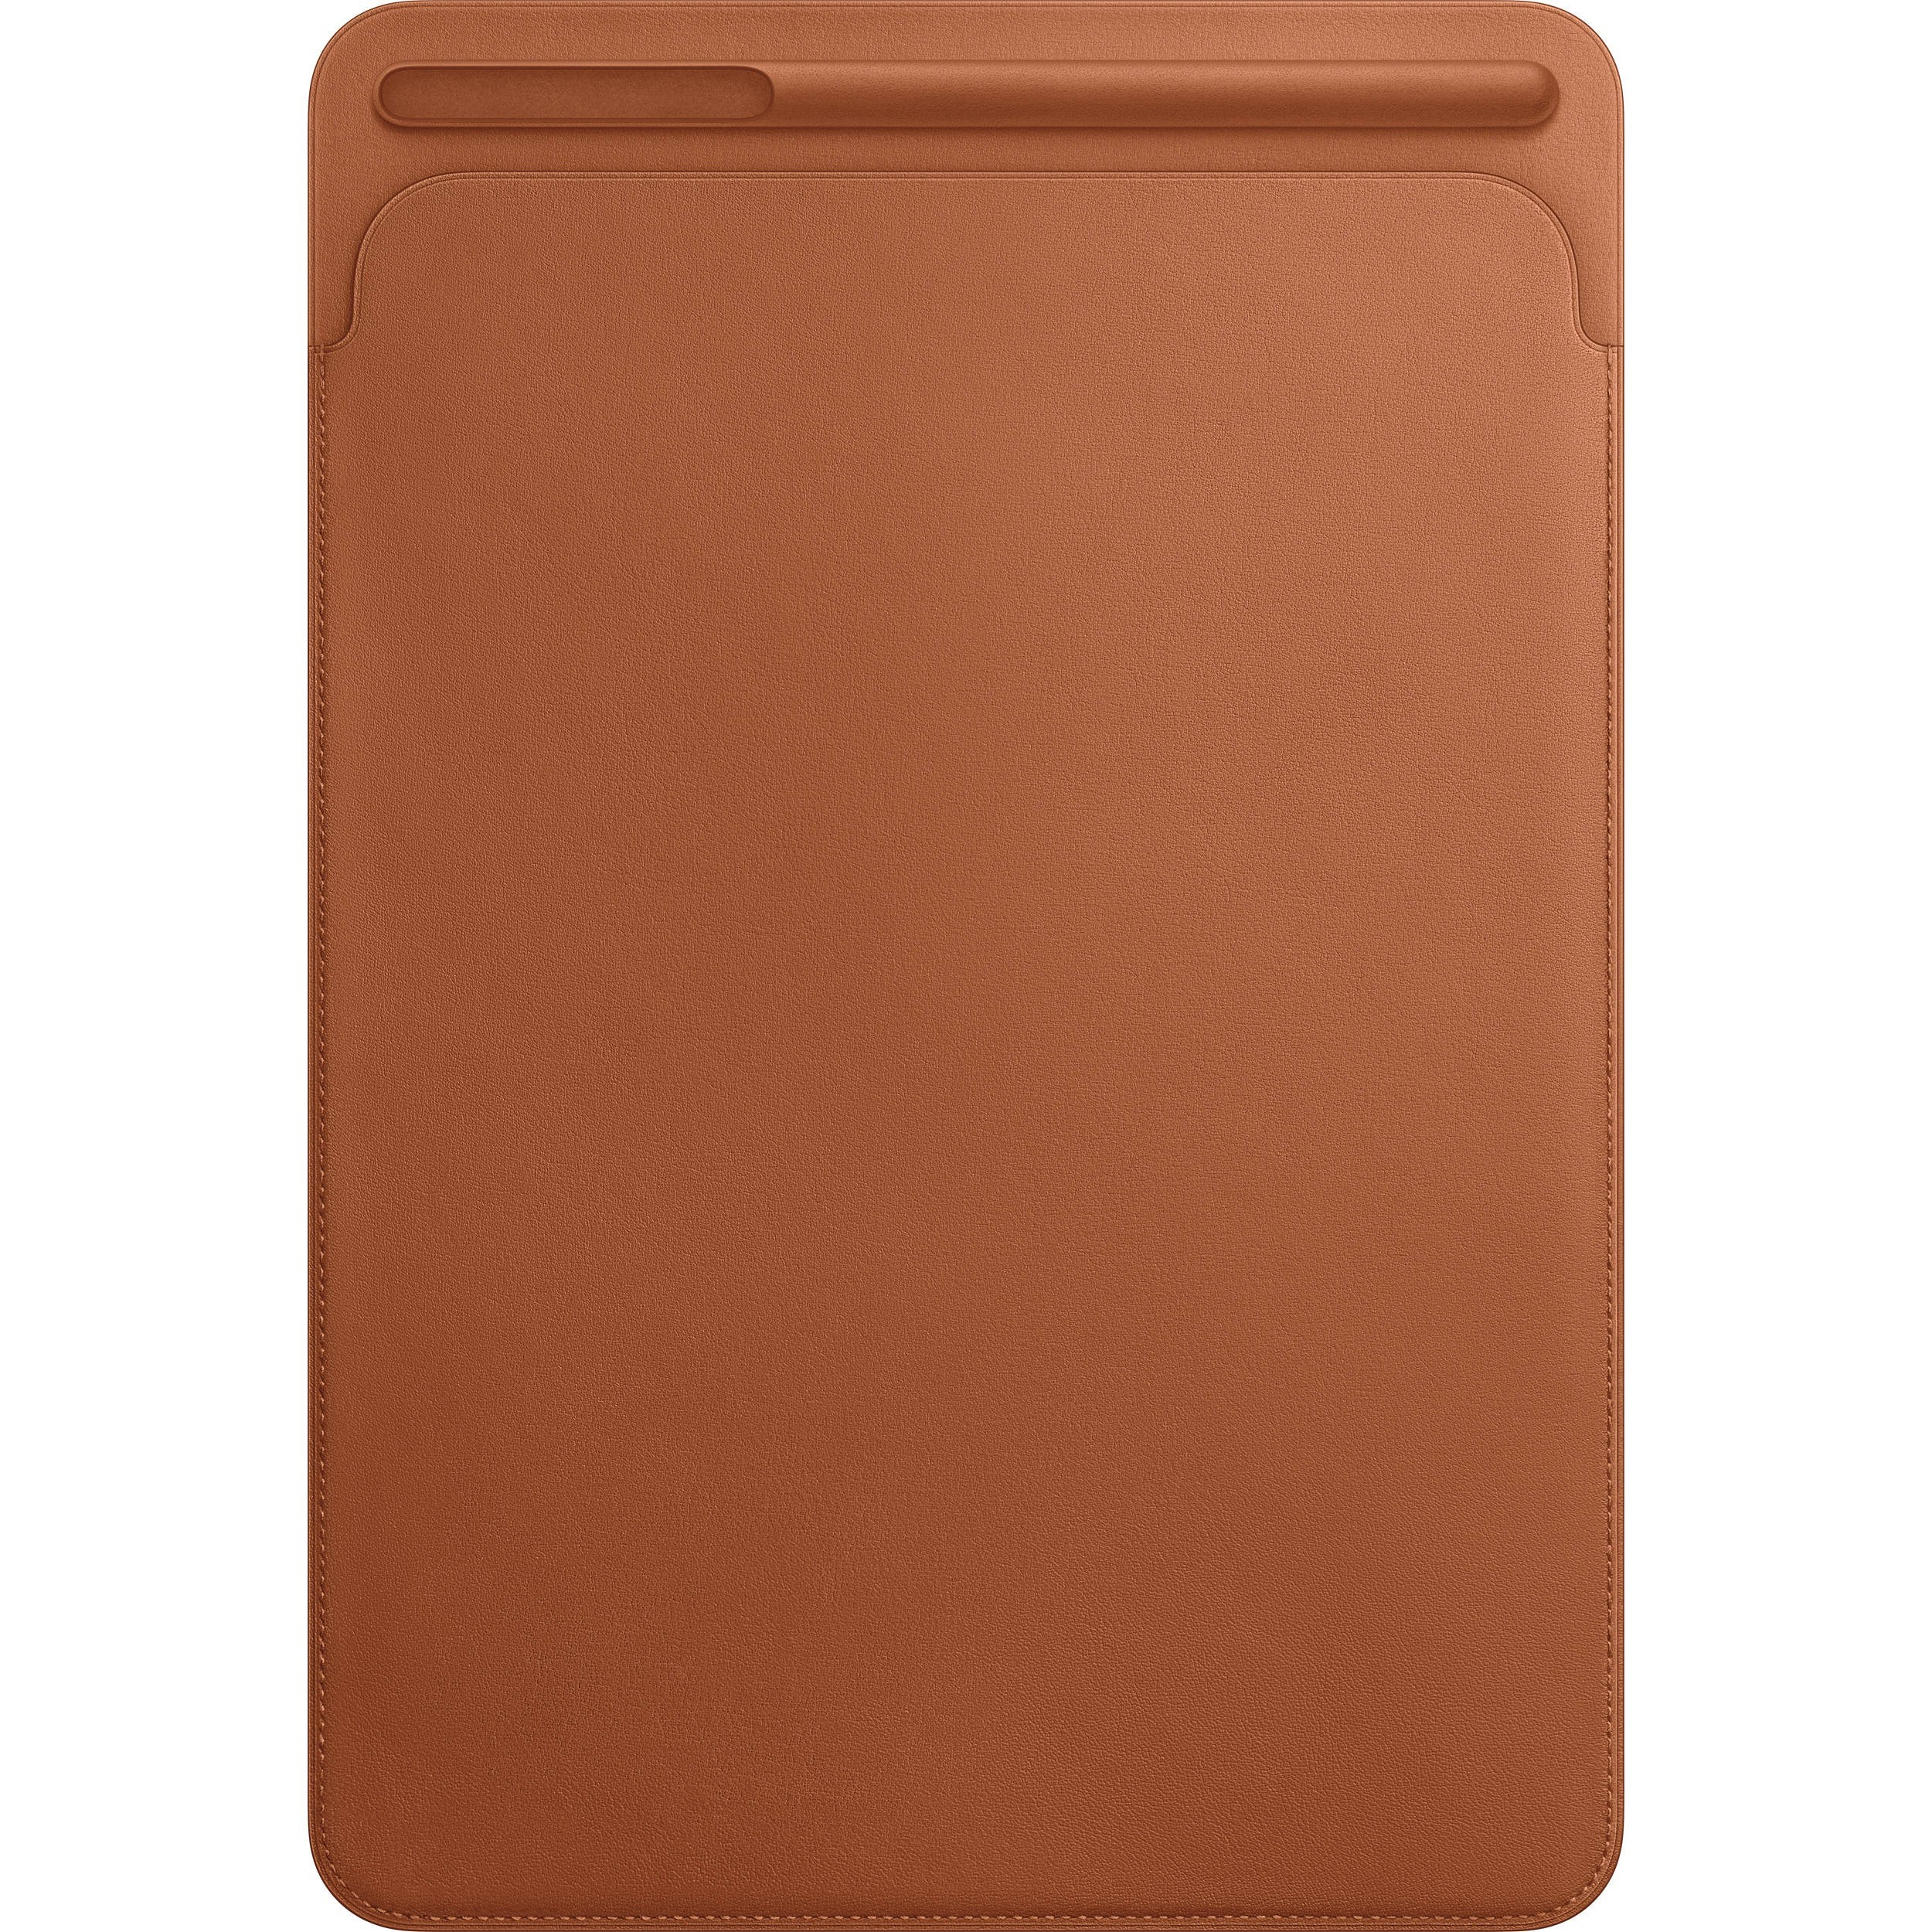 FUNDA APPLE IPAD PRO 10.5 CUERO MARRÓN CARAMELO